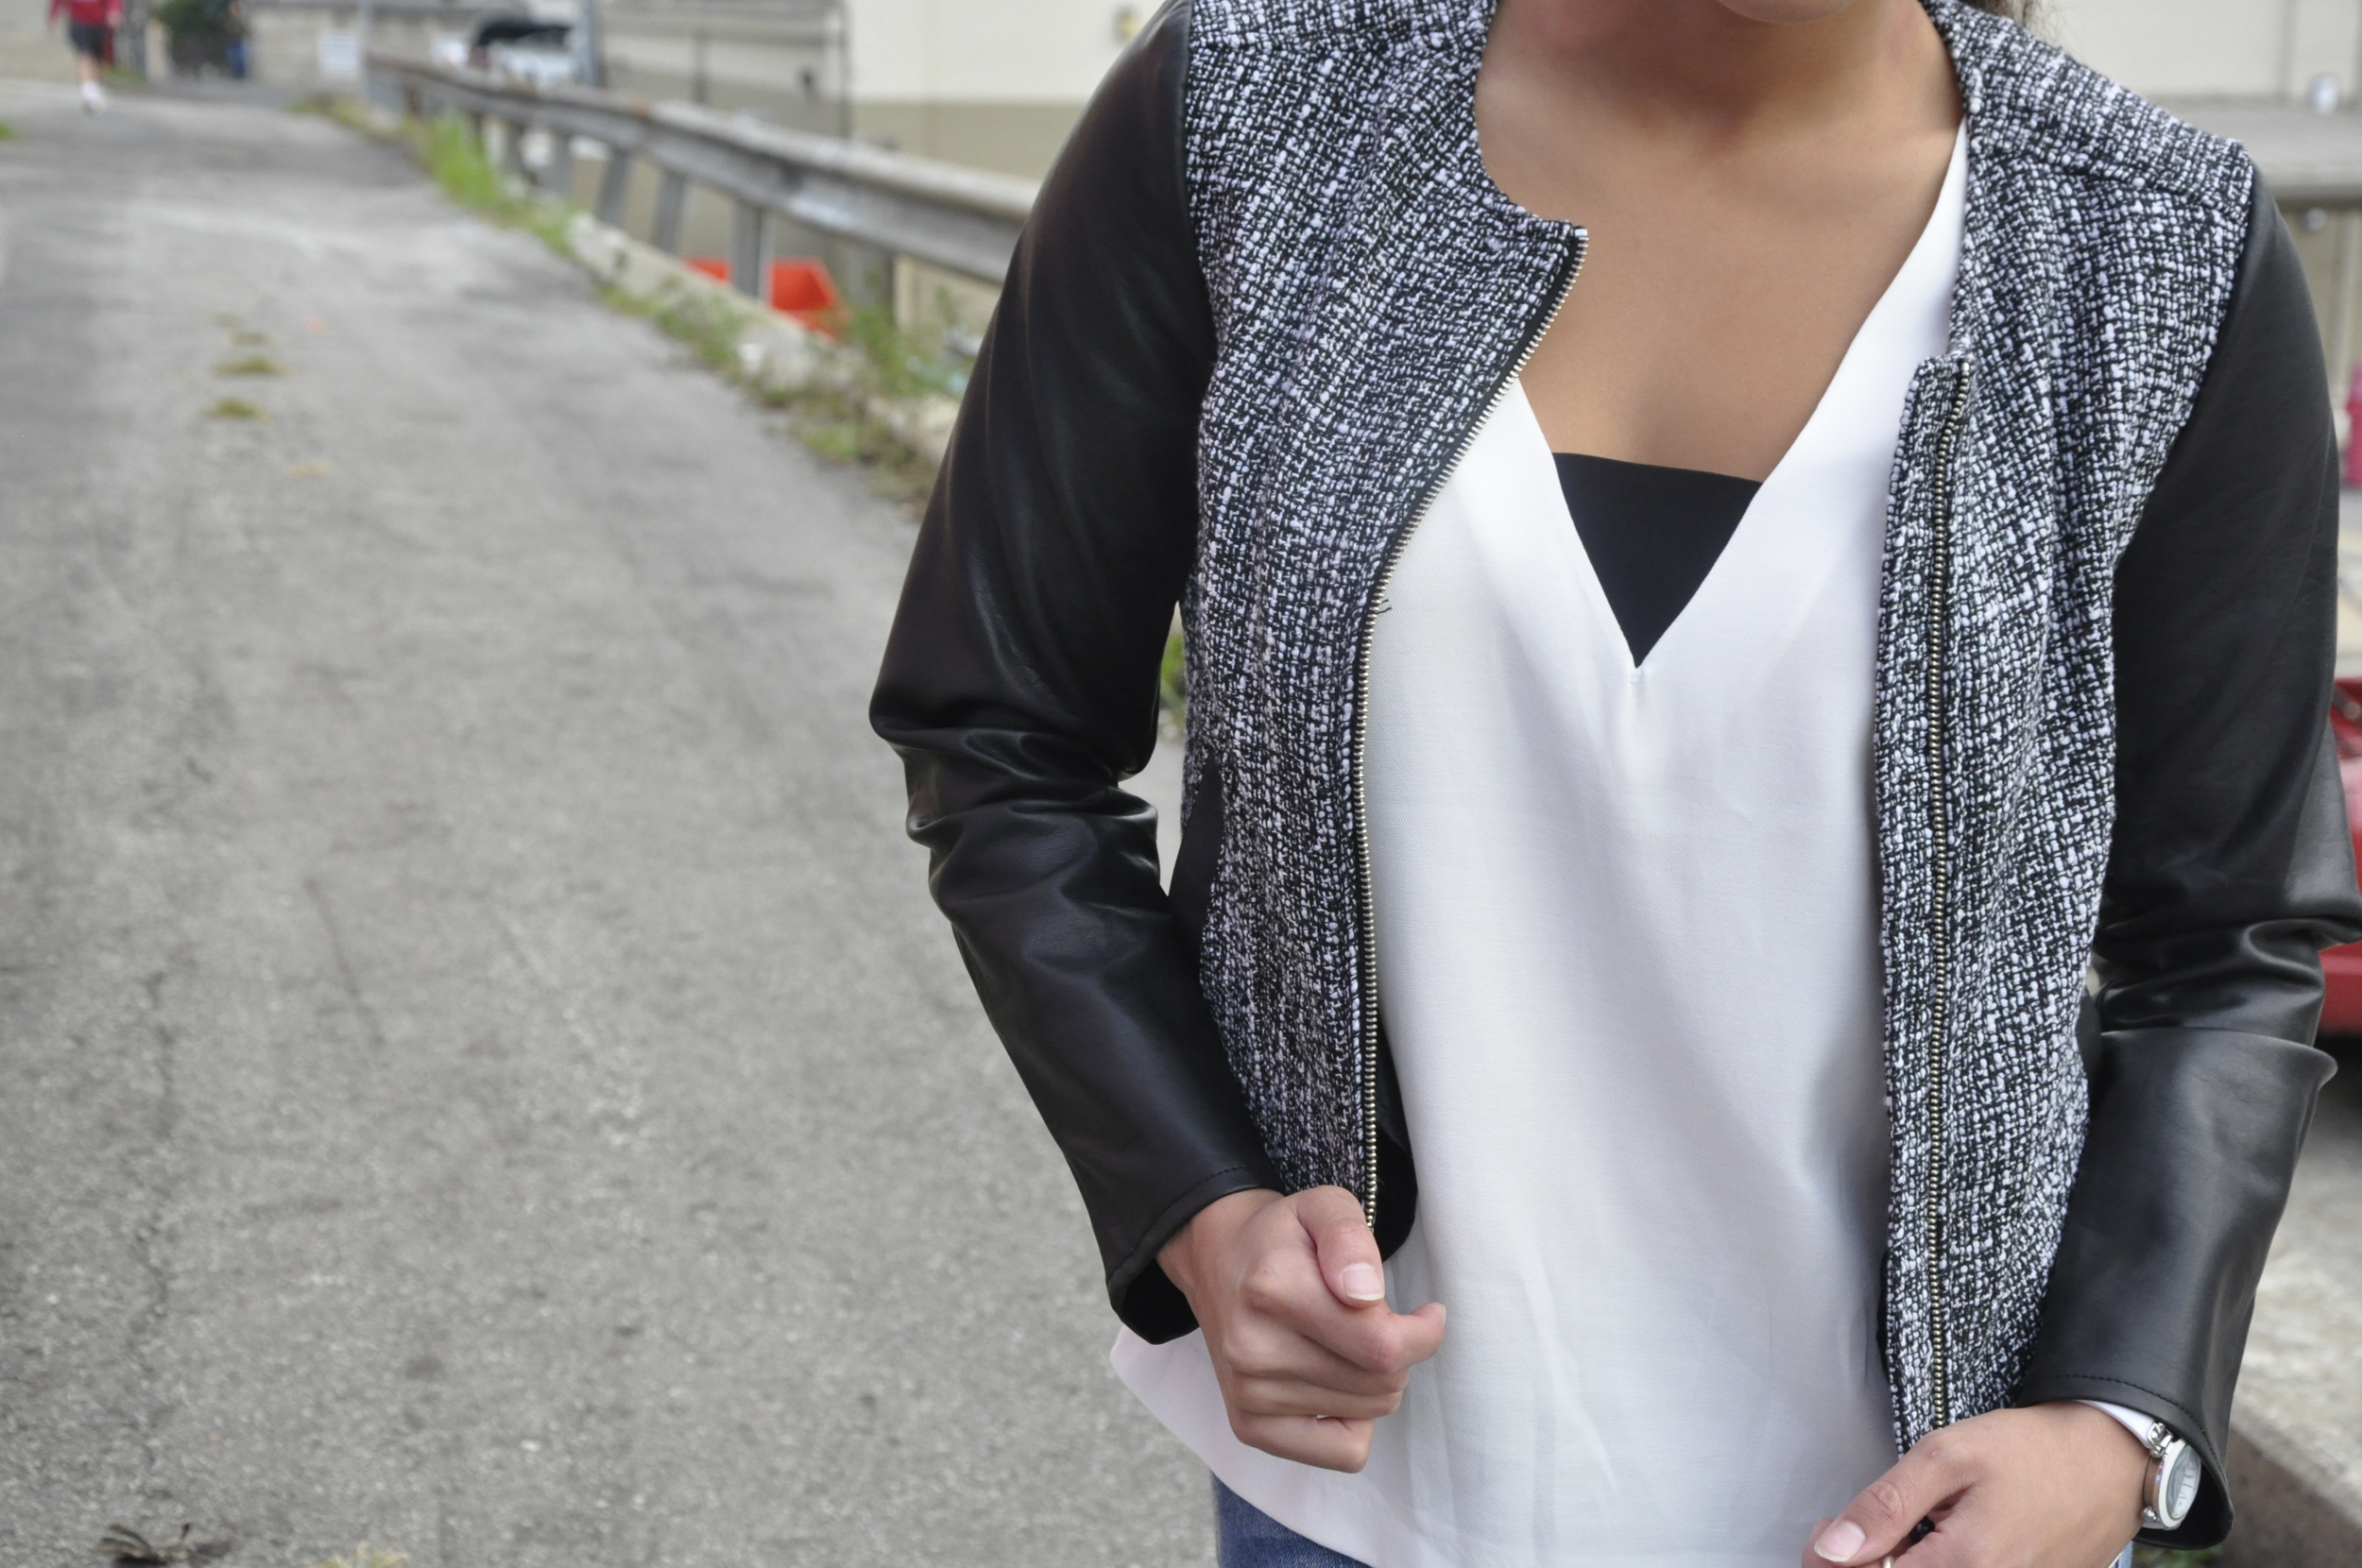 This top is a staple in my wardrobe! It's can be casual, it can be dressy, but most importantly, it is versatile. It's black and white, so you can wear it with many different color and style bottoms. The V-neck paired with the contrasting horizontal black fabric adds a modern edge, which compliments the jackets modern look.